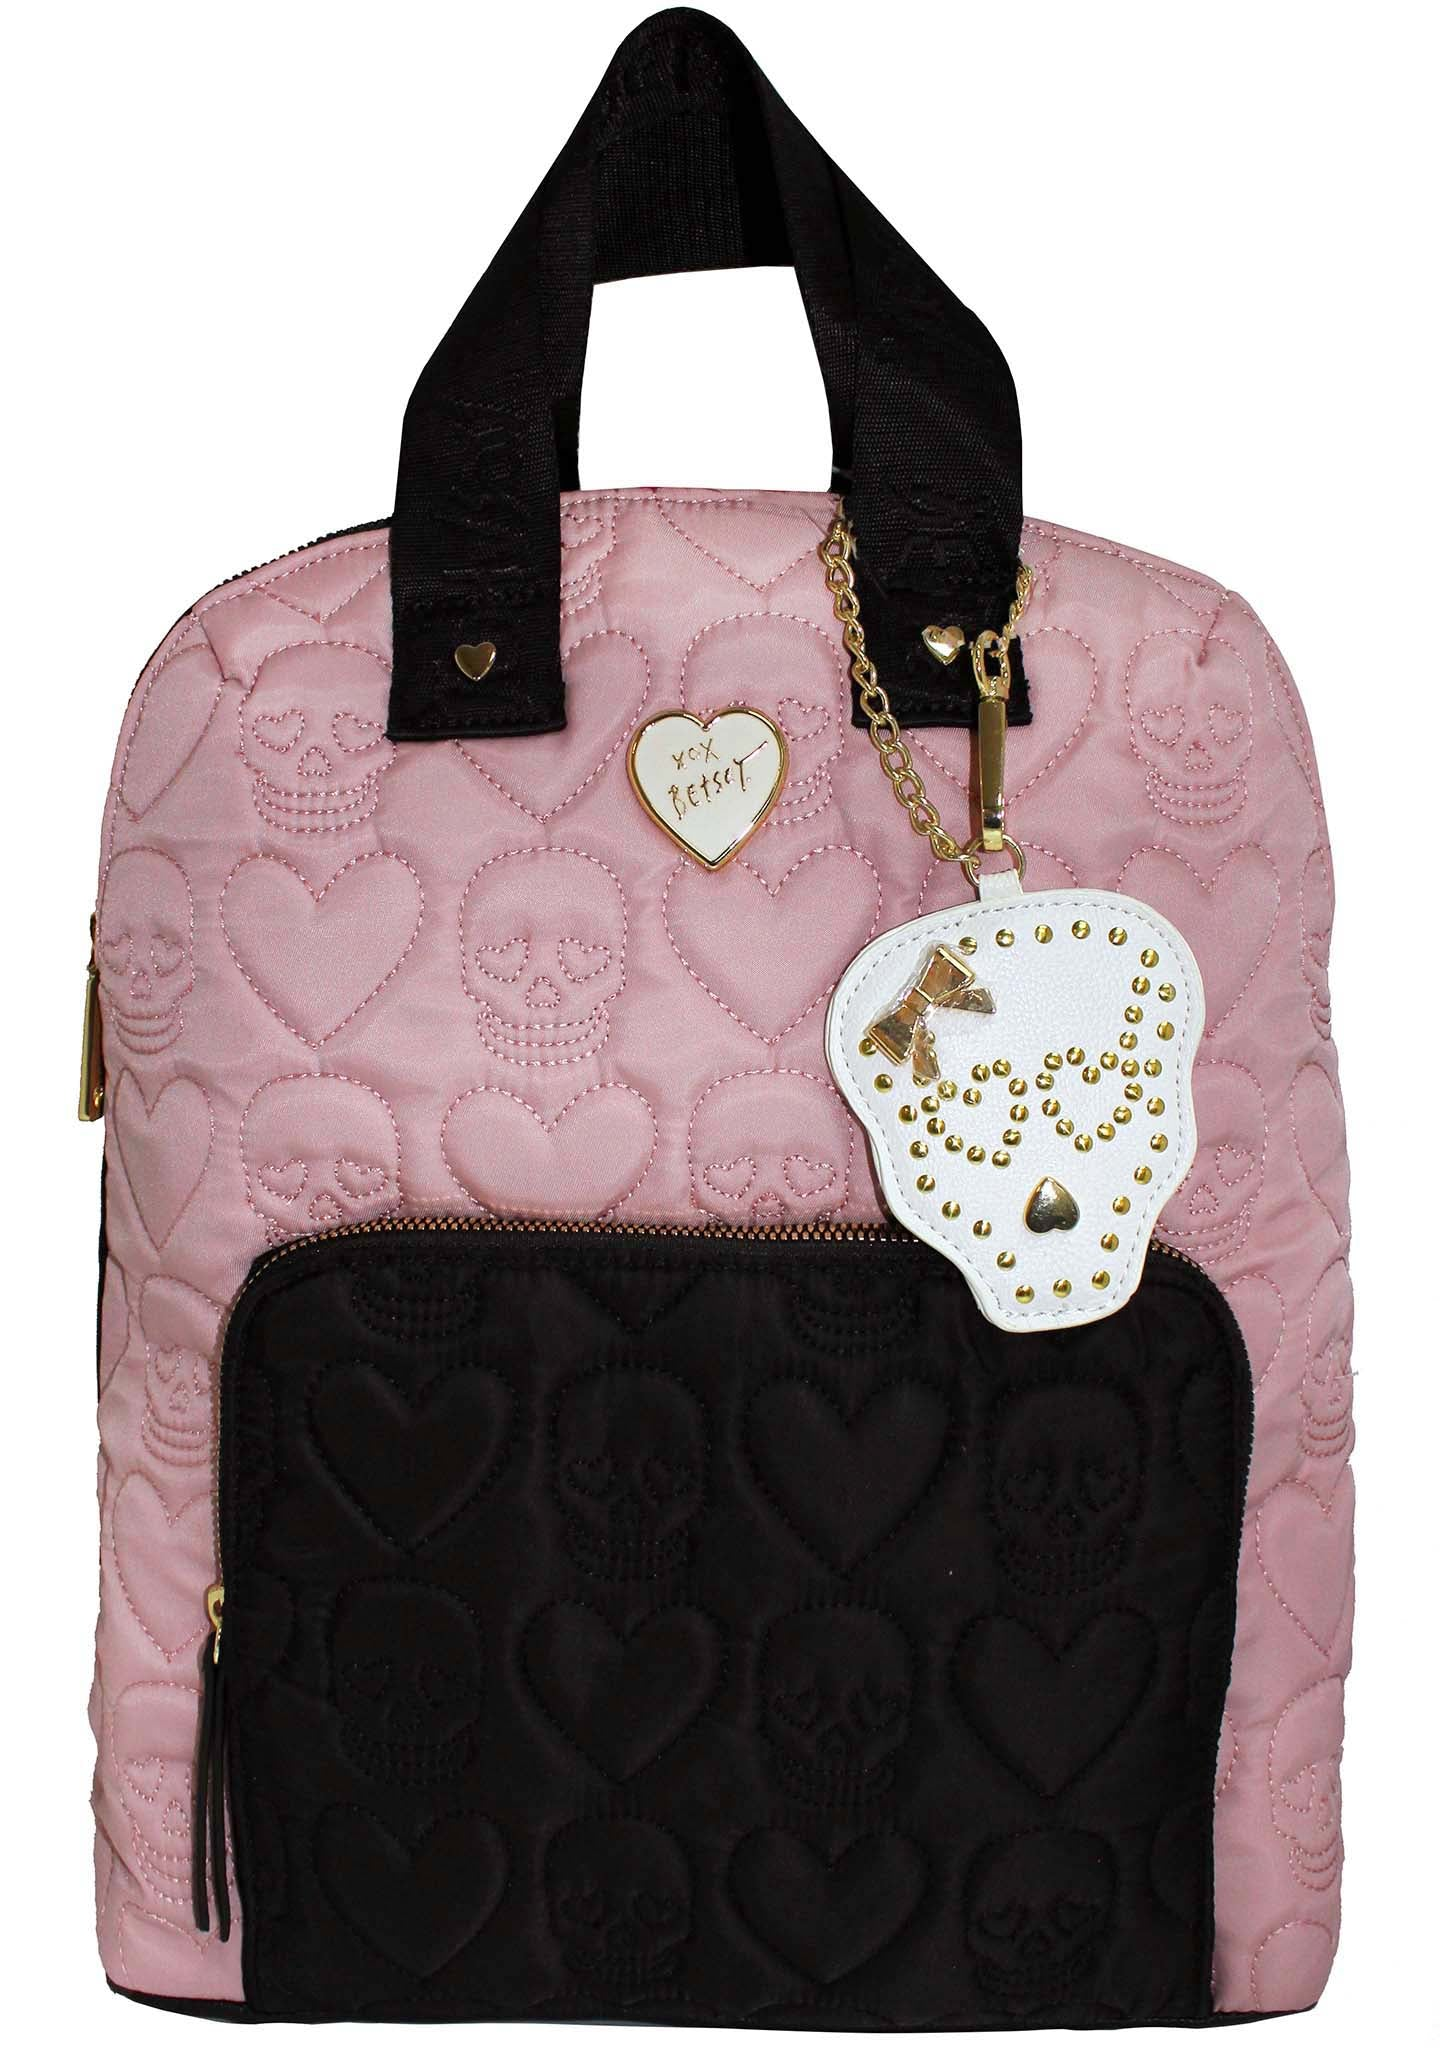 Lovestruck Quilted Backpack 73d20c9be4888